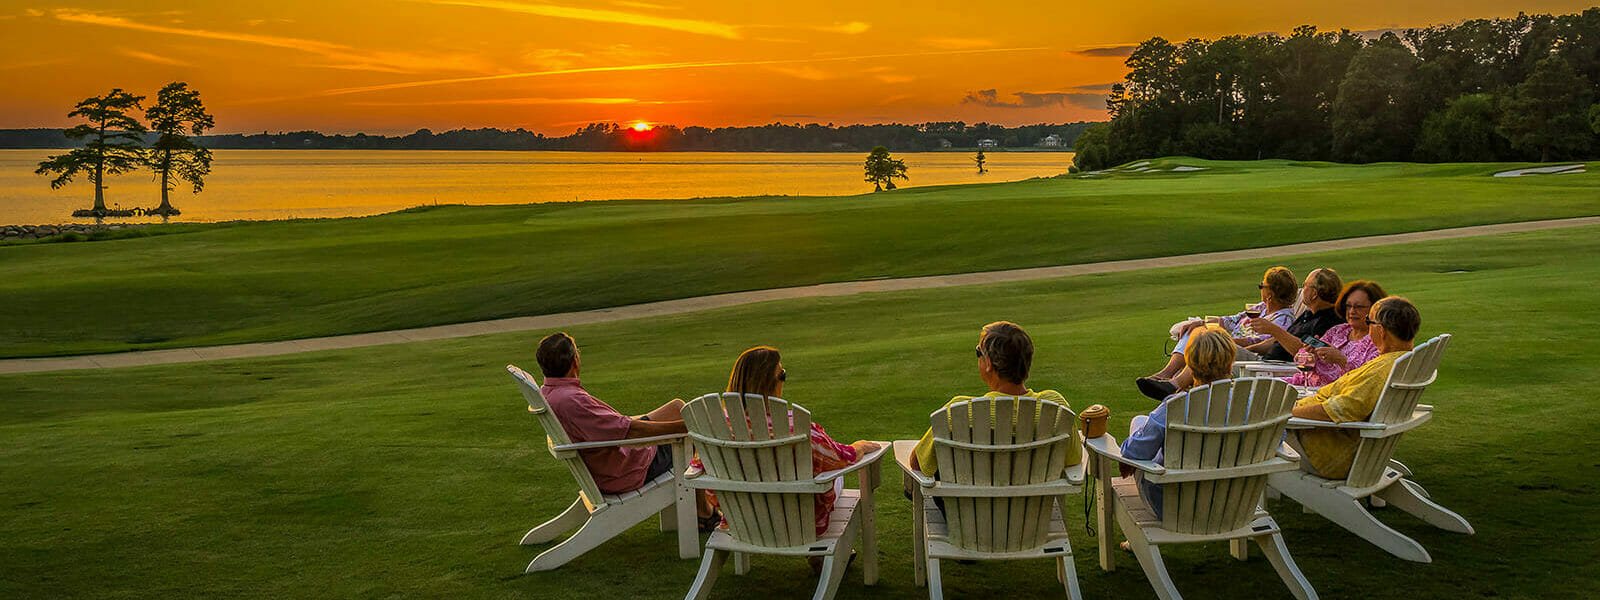 The Governors Land at Two Rivers | Viginia Golf Community | Retire VA